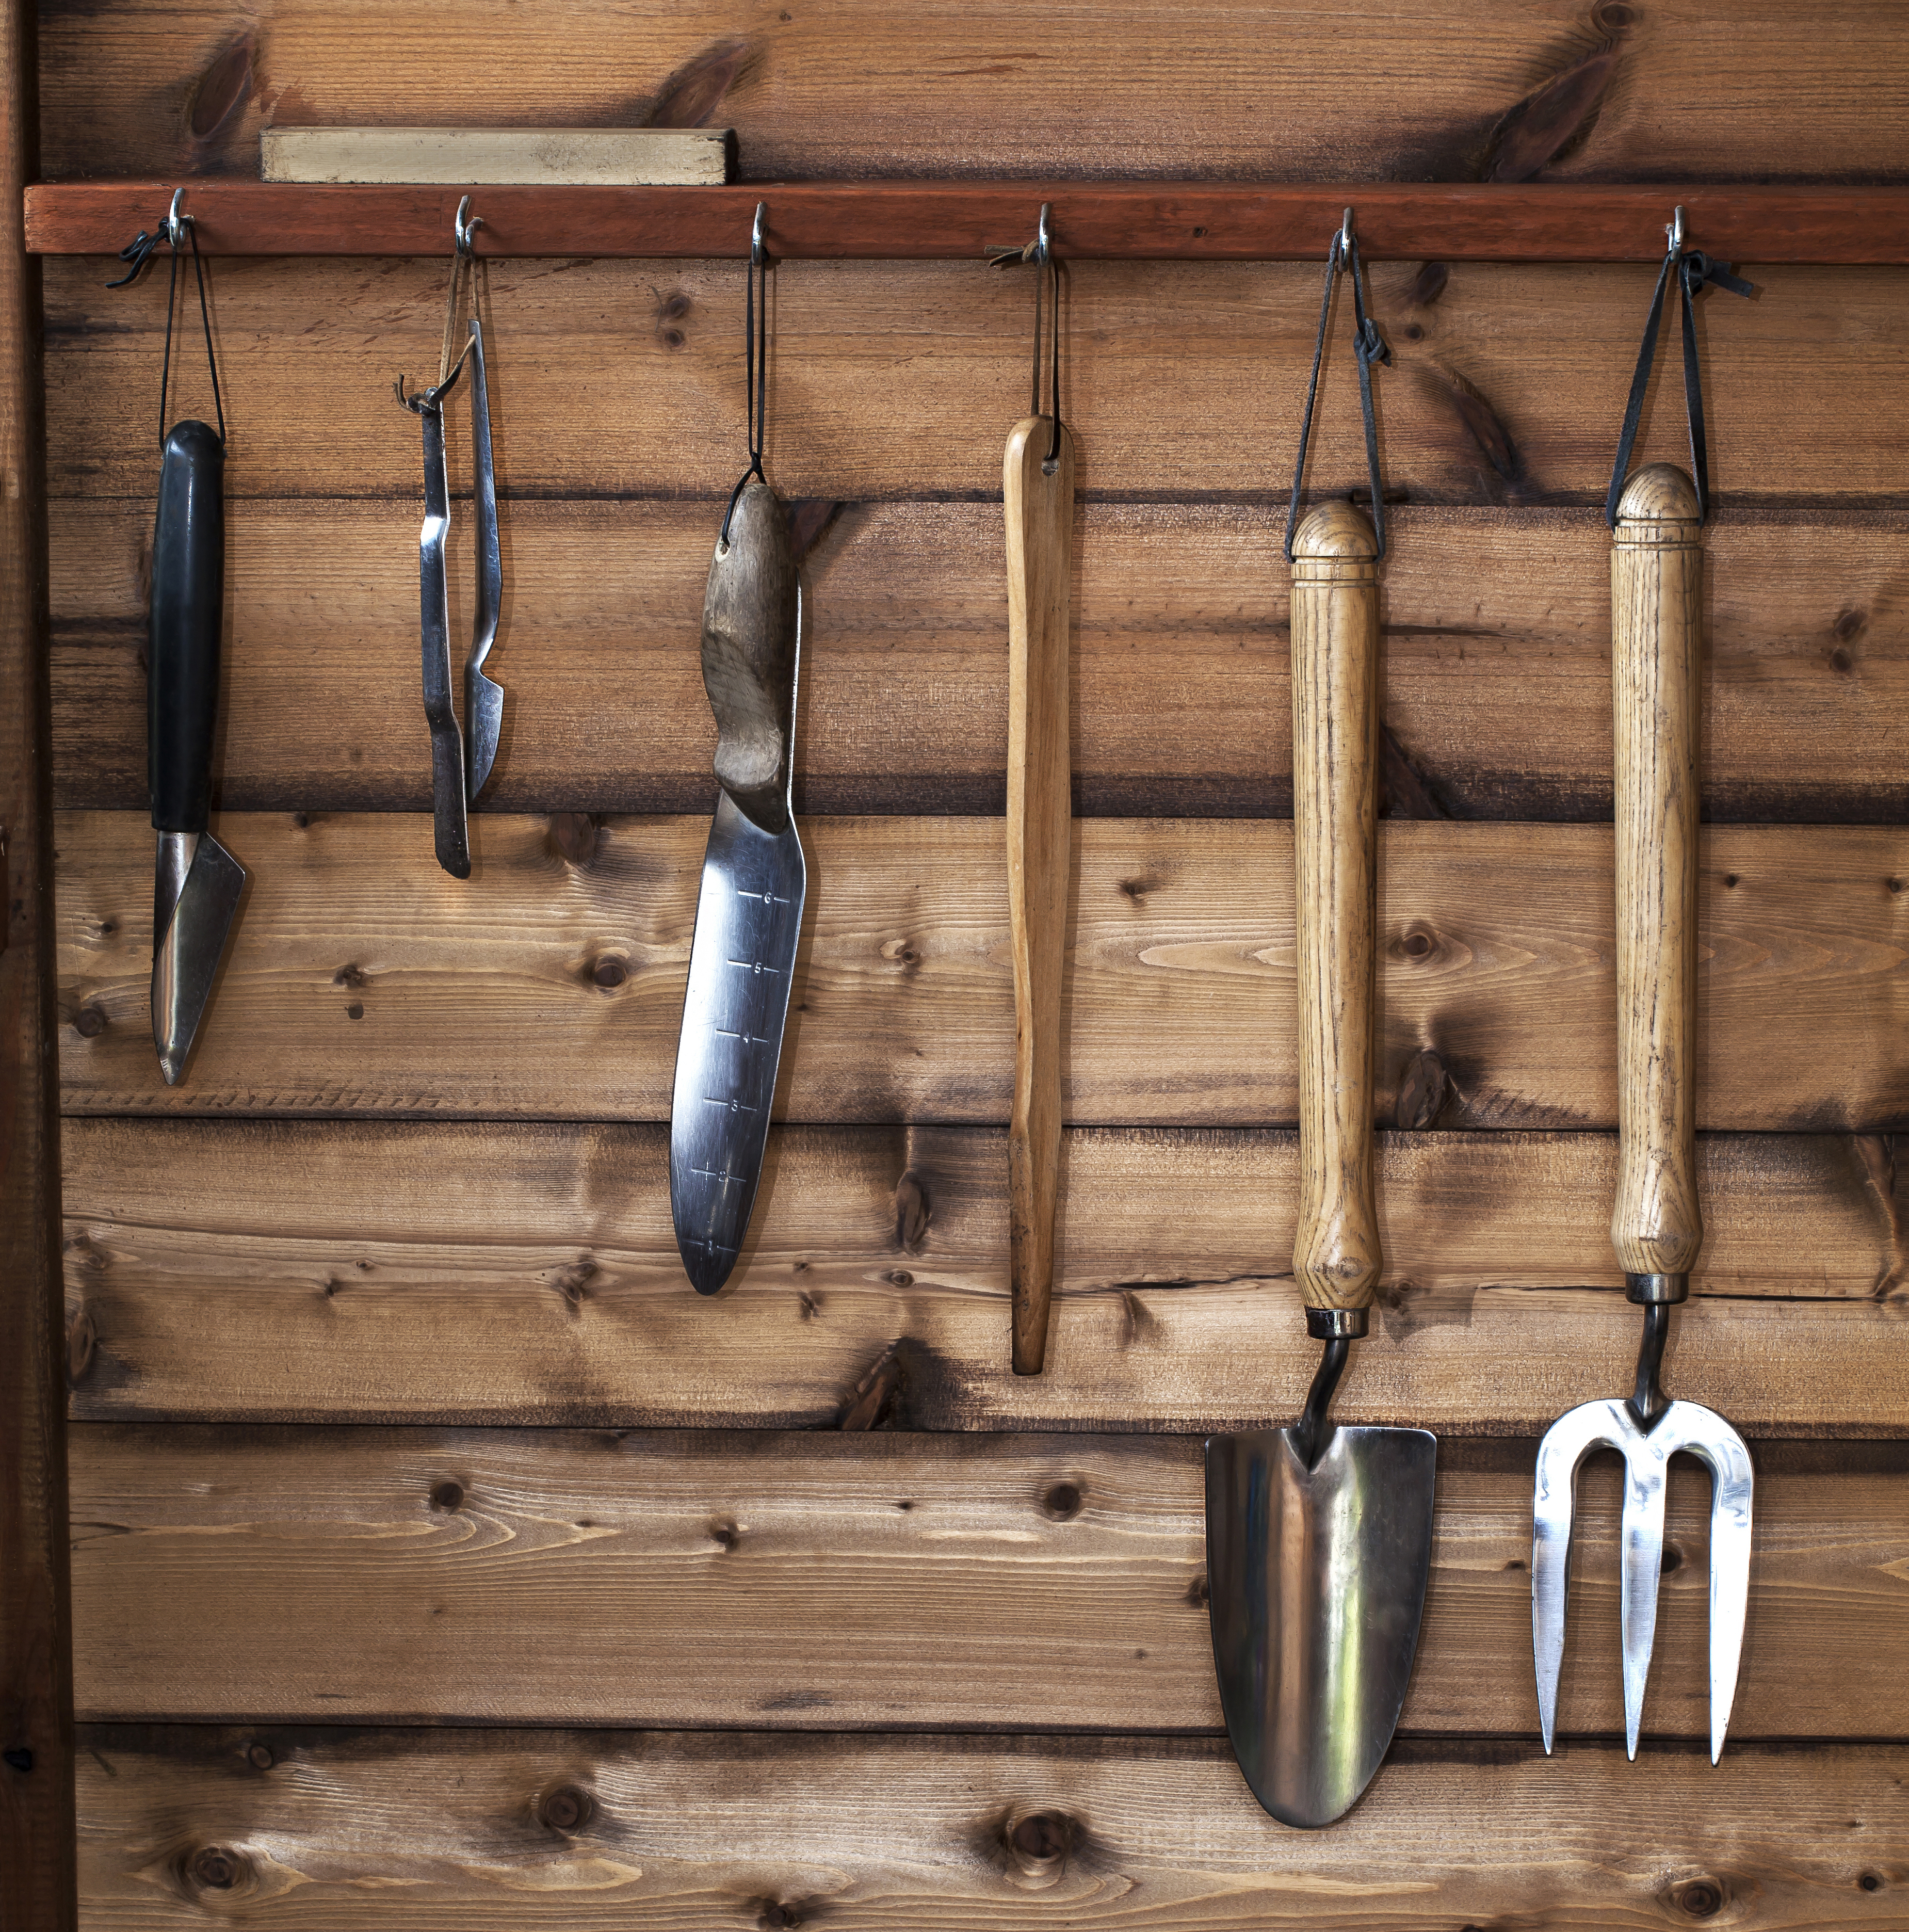 Assorted garden tools hanging up in wooden shed, dibbers, trowel, fork and spade.